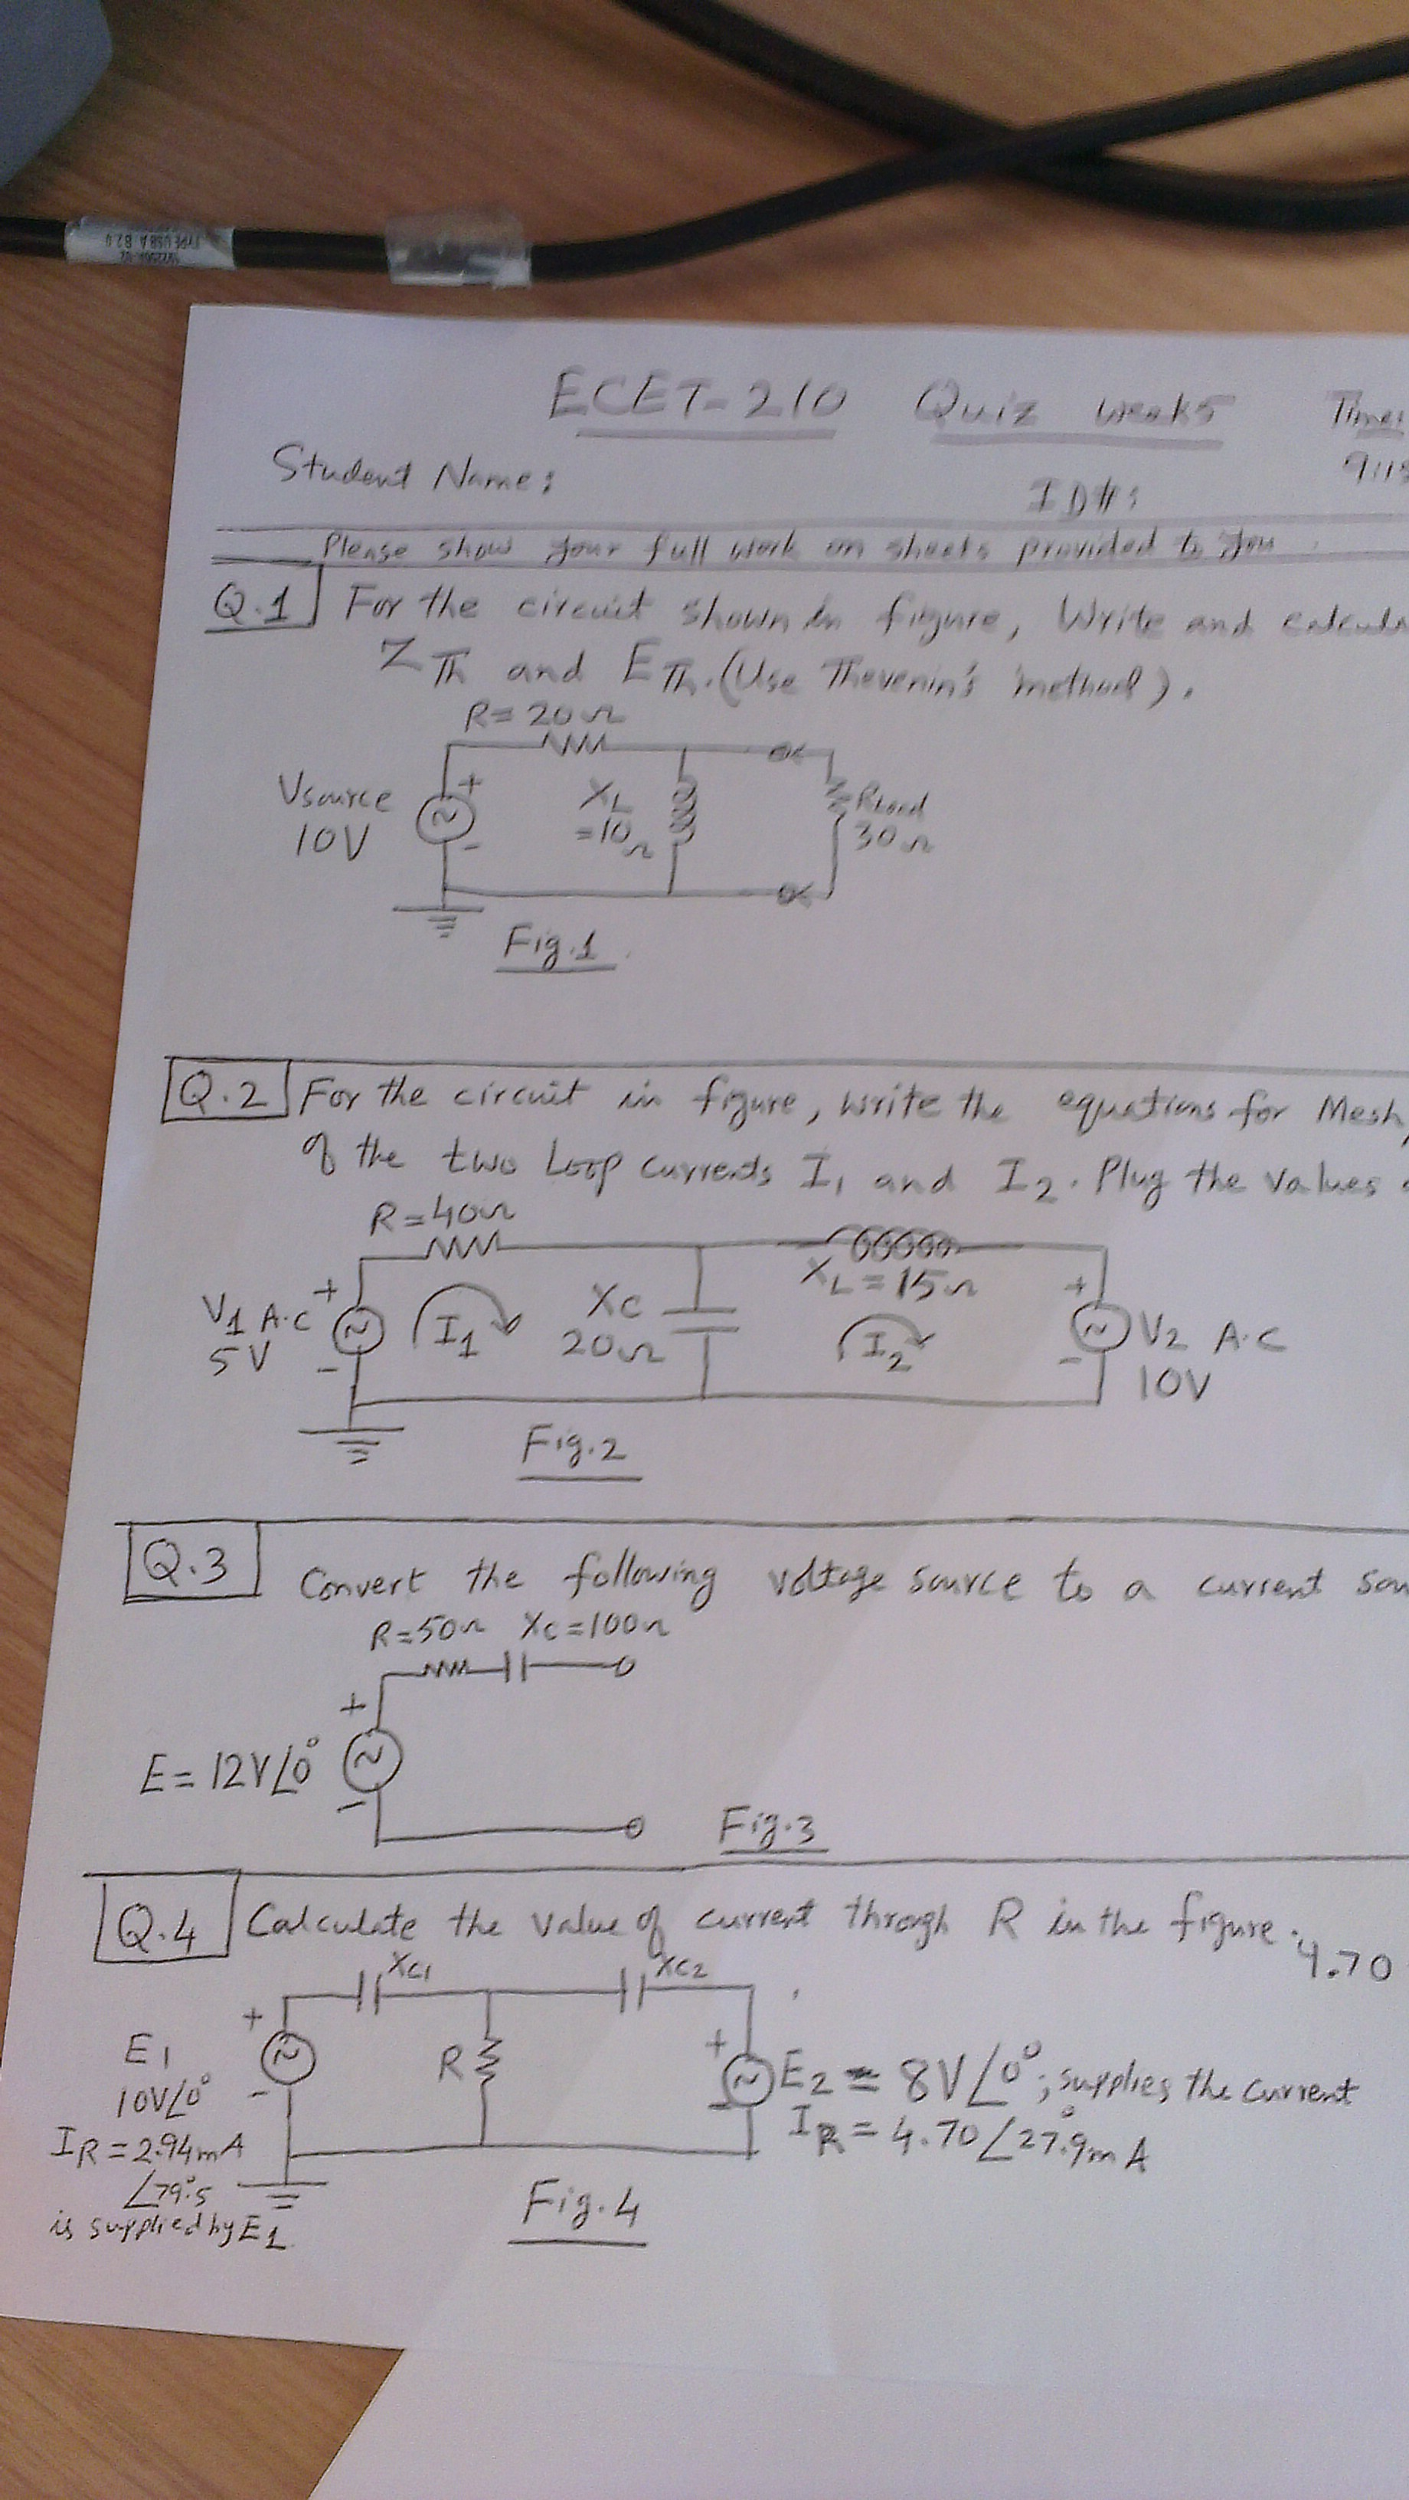 Of the Loop currents I1 and I2.Plug the values als